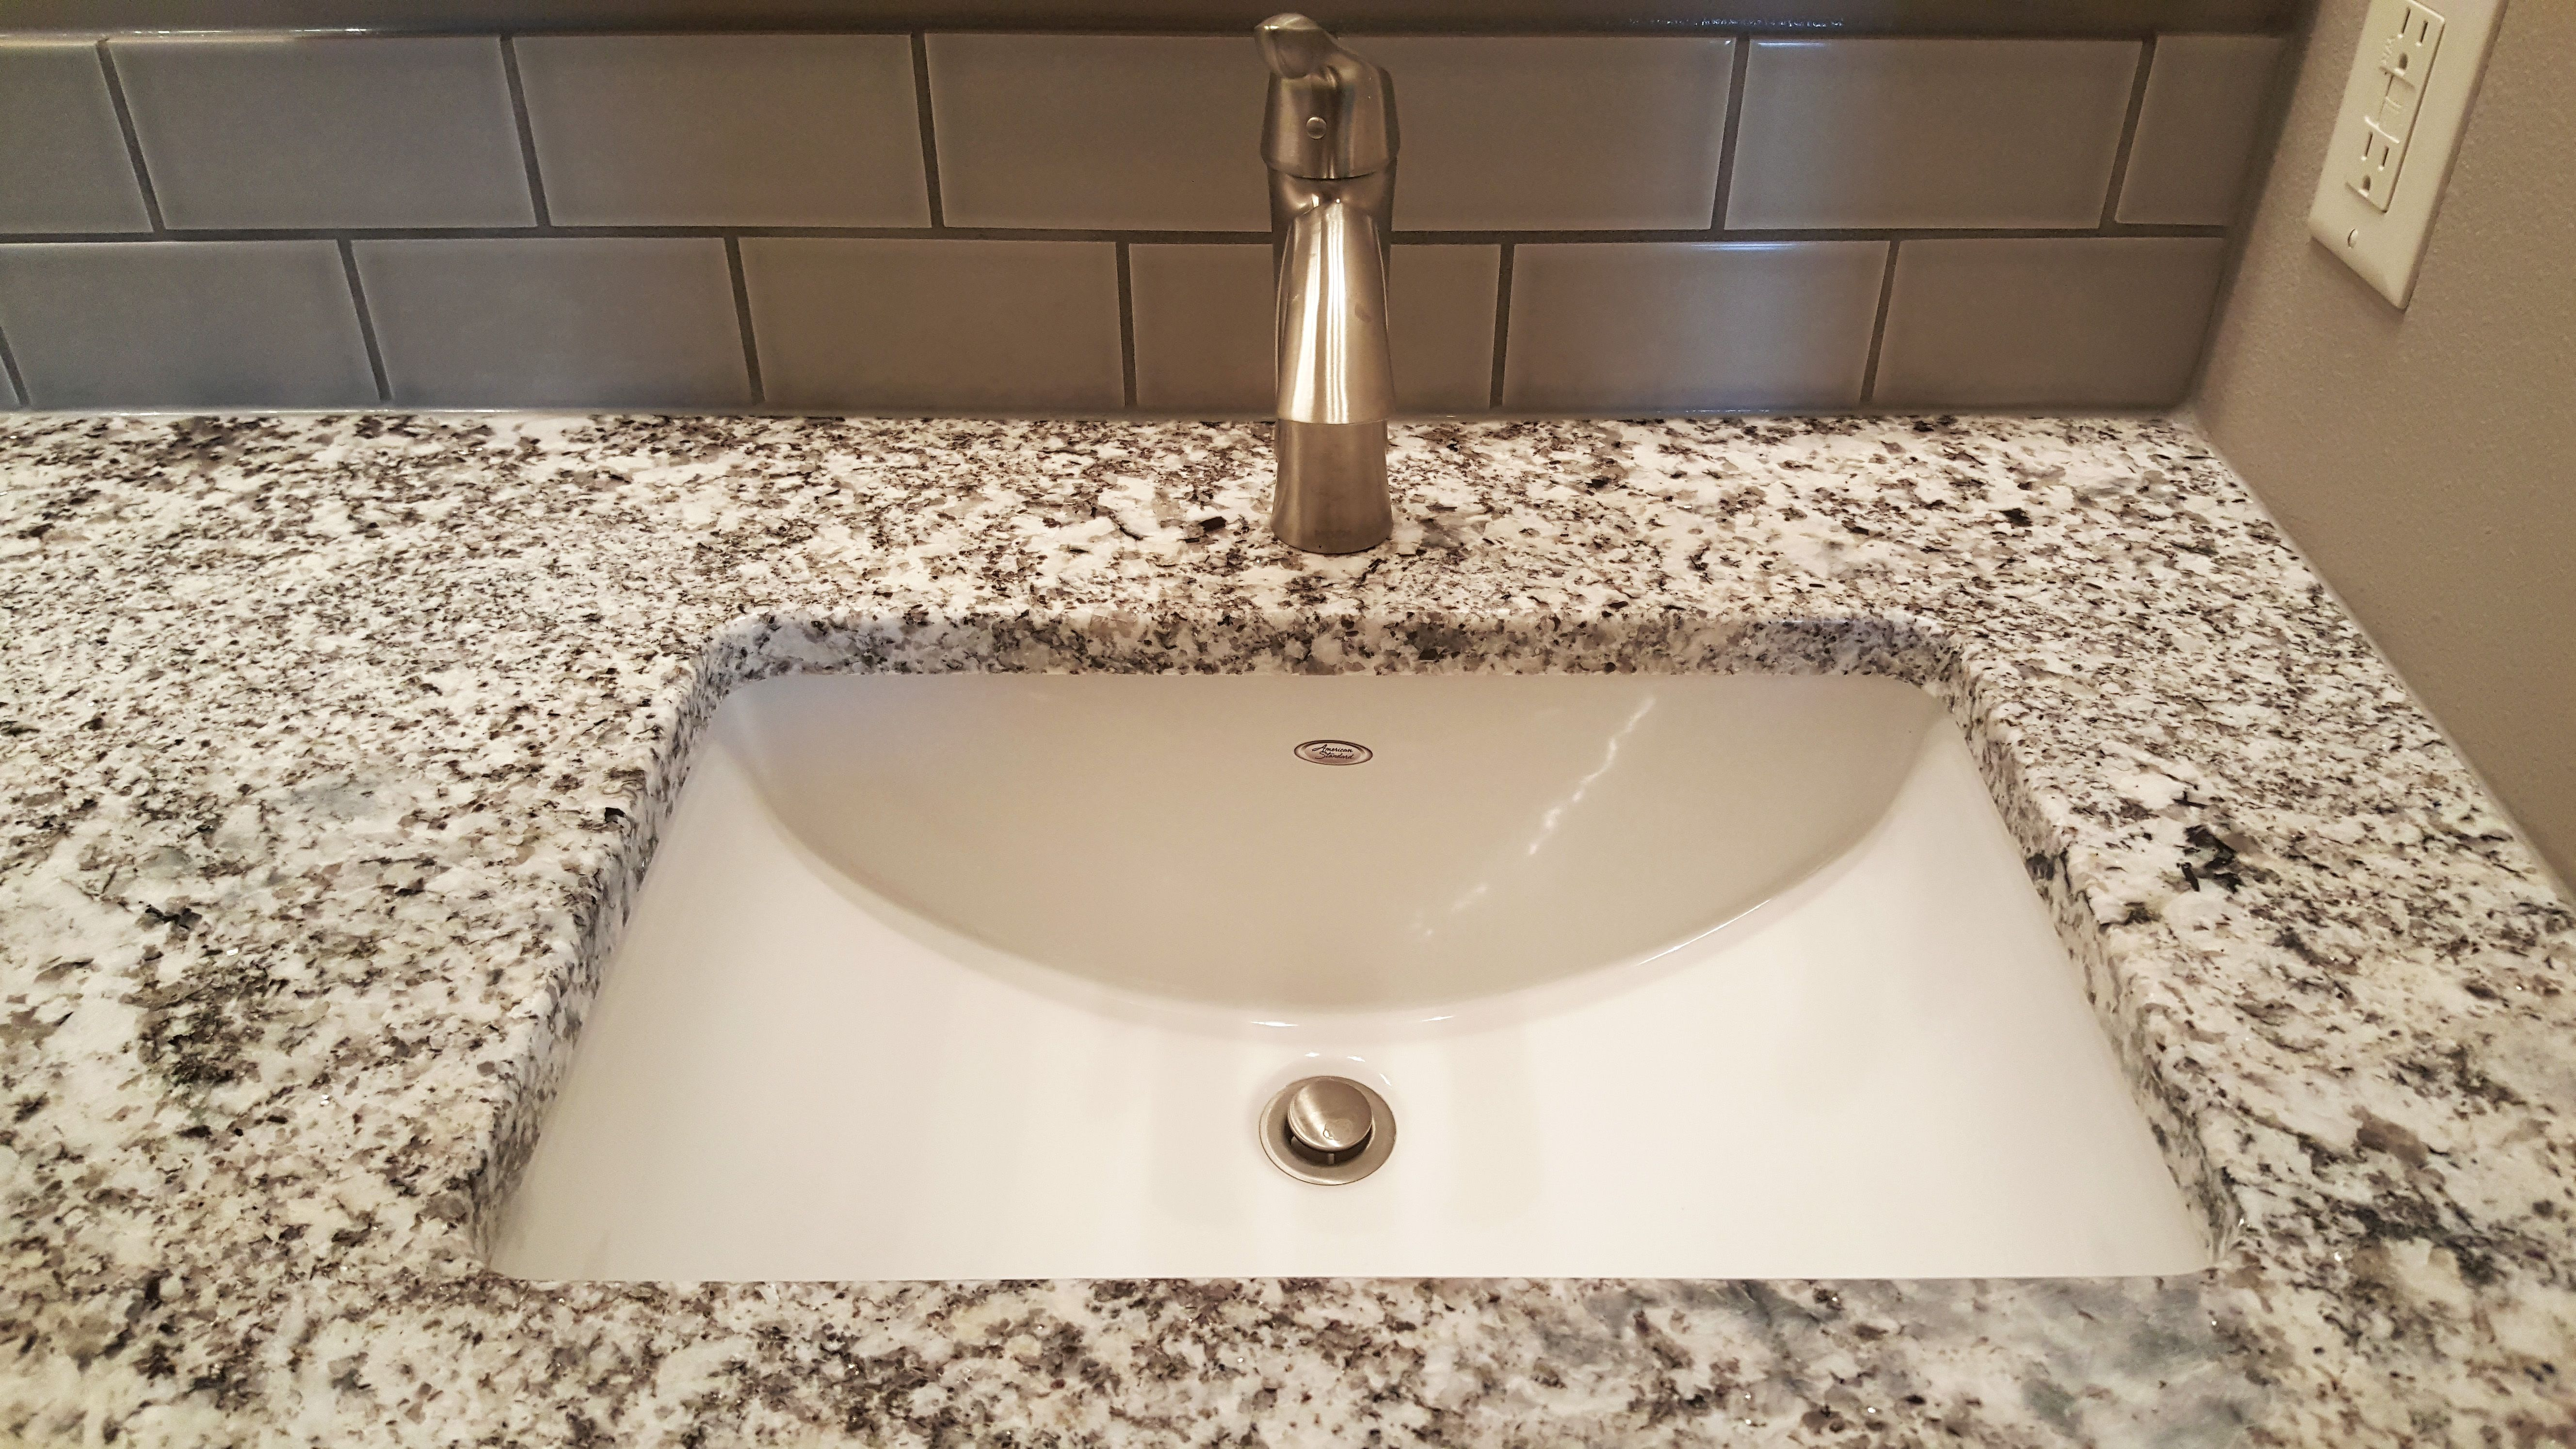 Sienna White Polished Granite Countertops From Brazil With Images Granite Countertops Granite